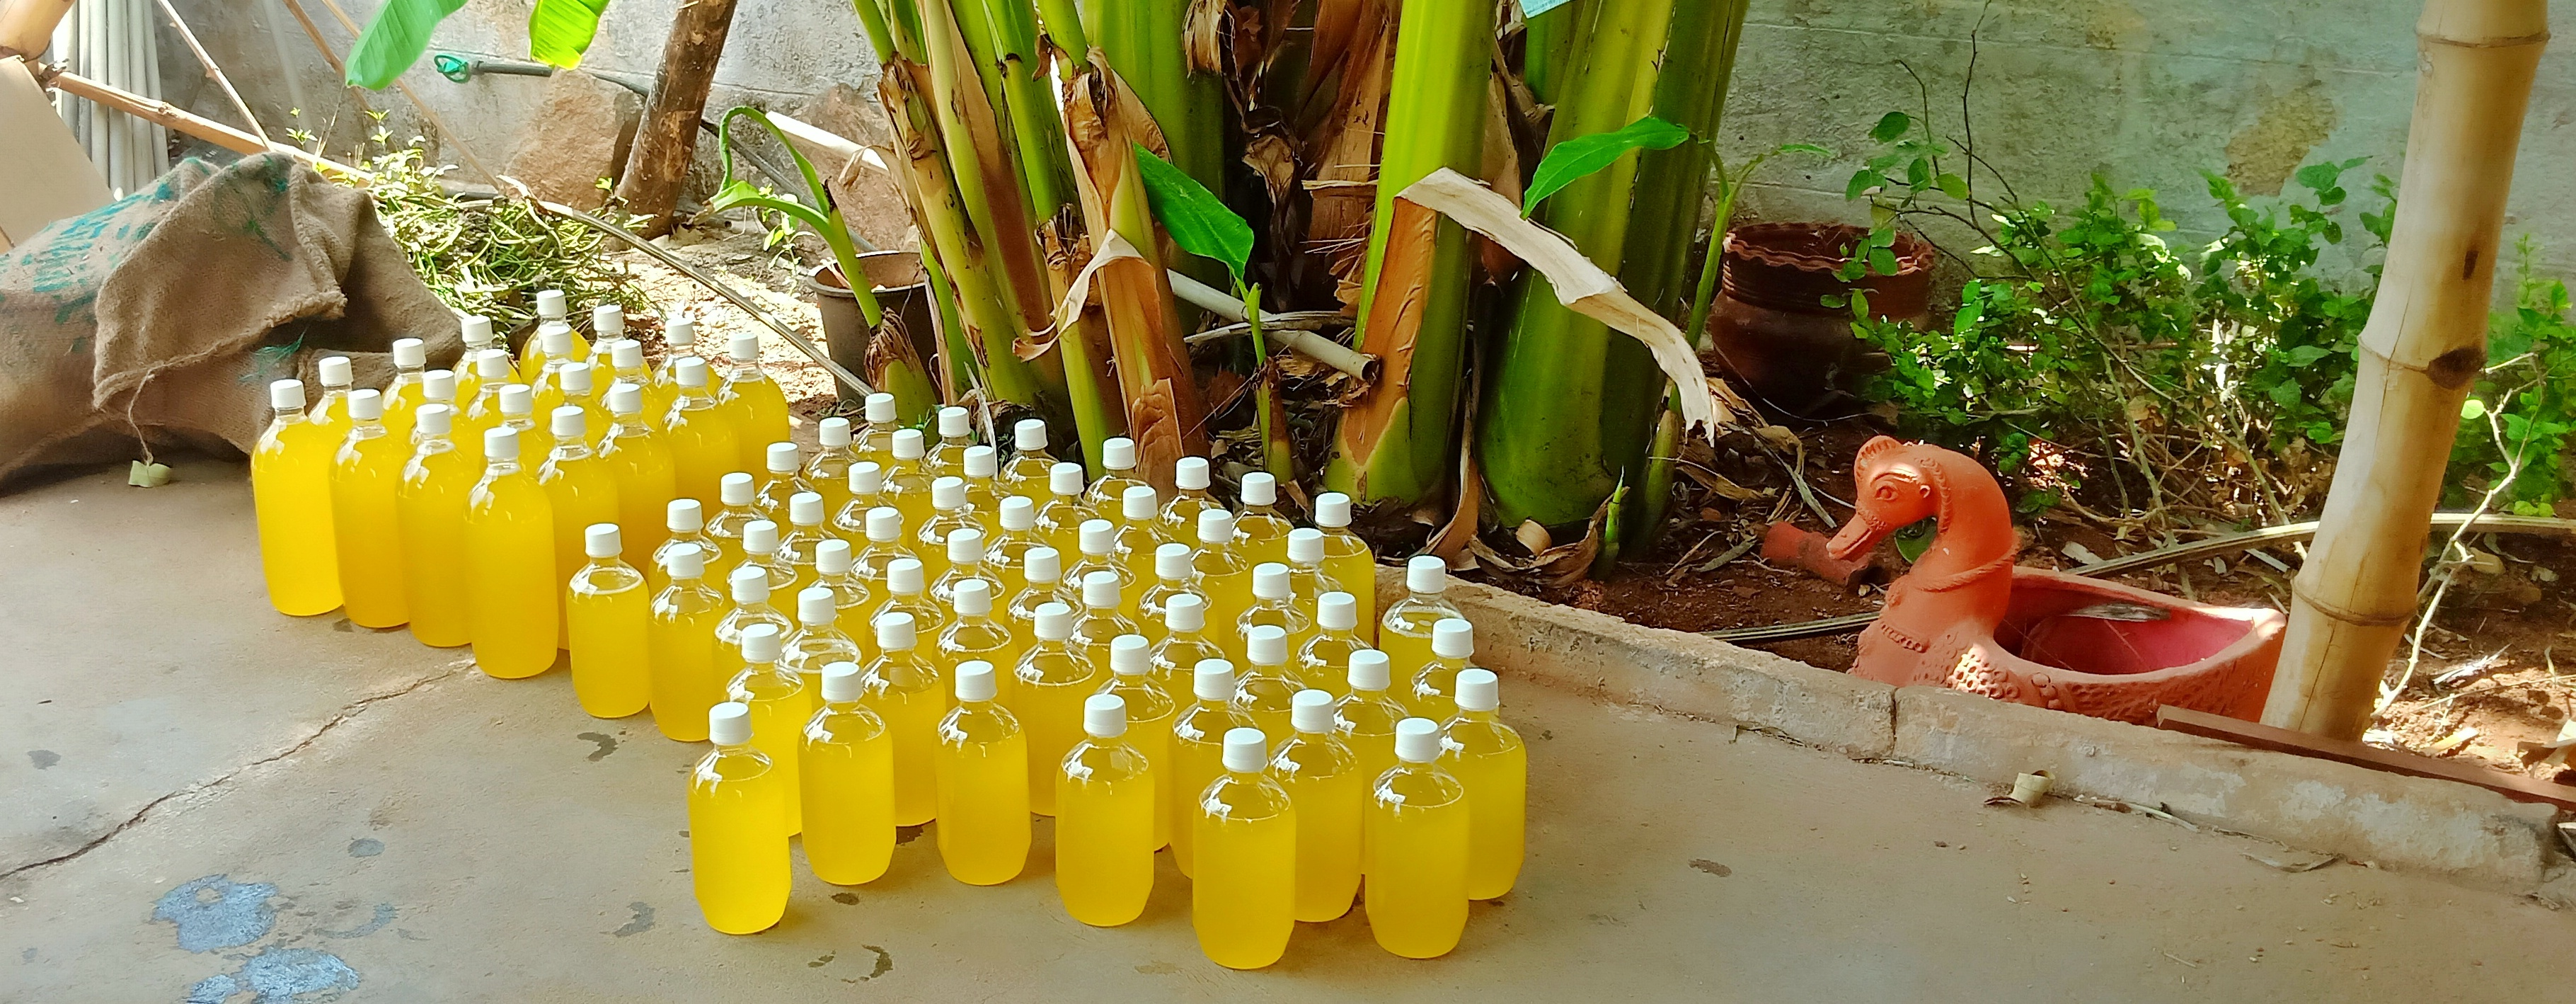 100% Pure Cold Pressed Groundnut Oil - Just in May 2019